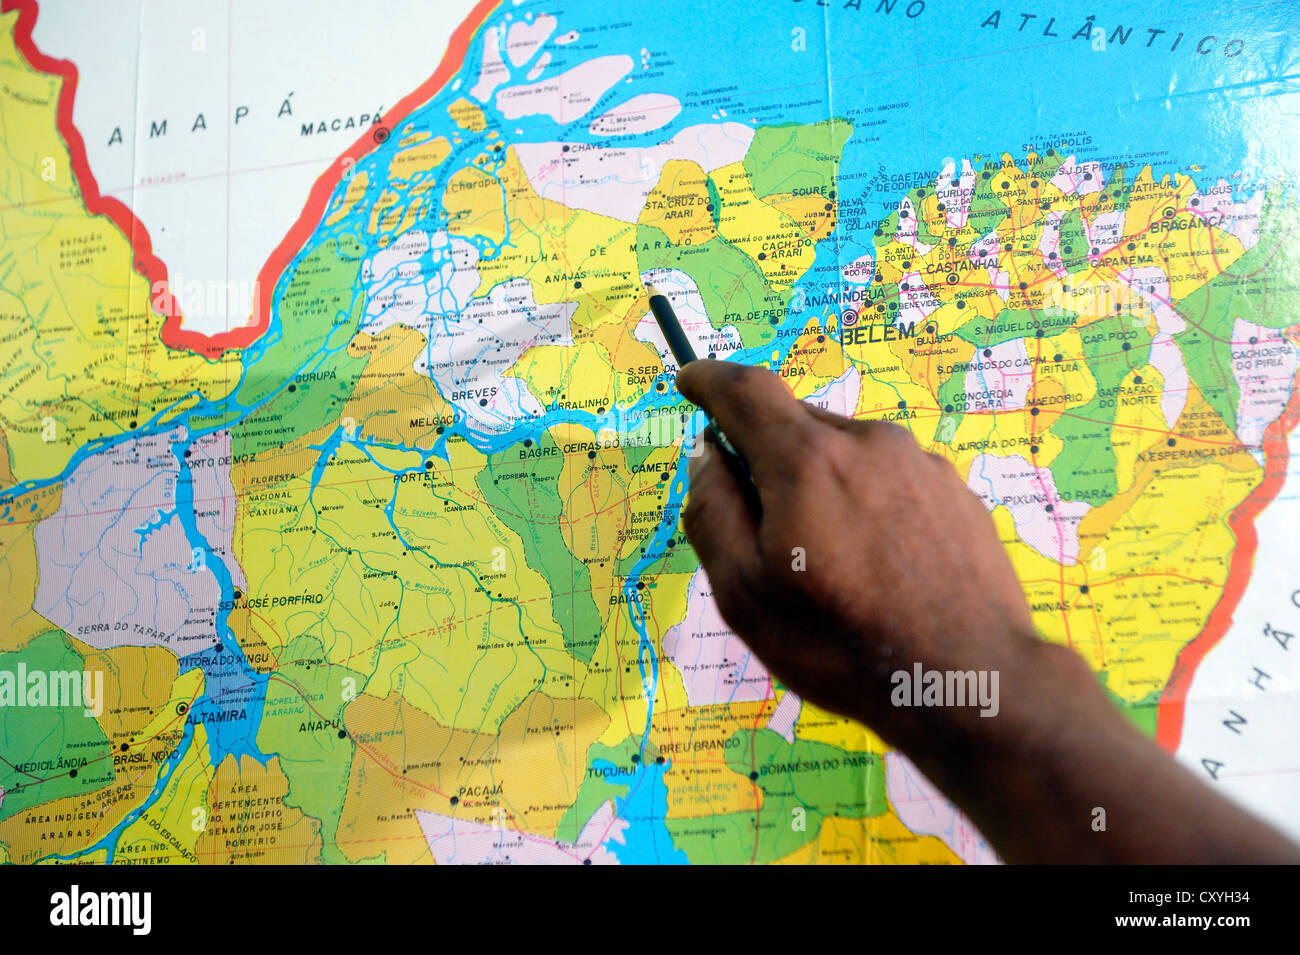 Hand pointing towards a map with a pen towards a location in the